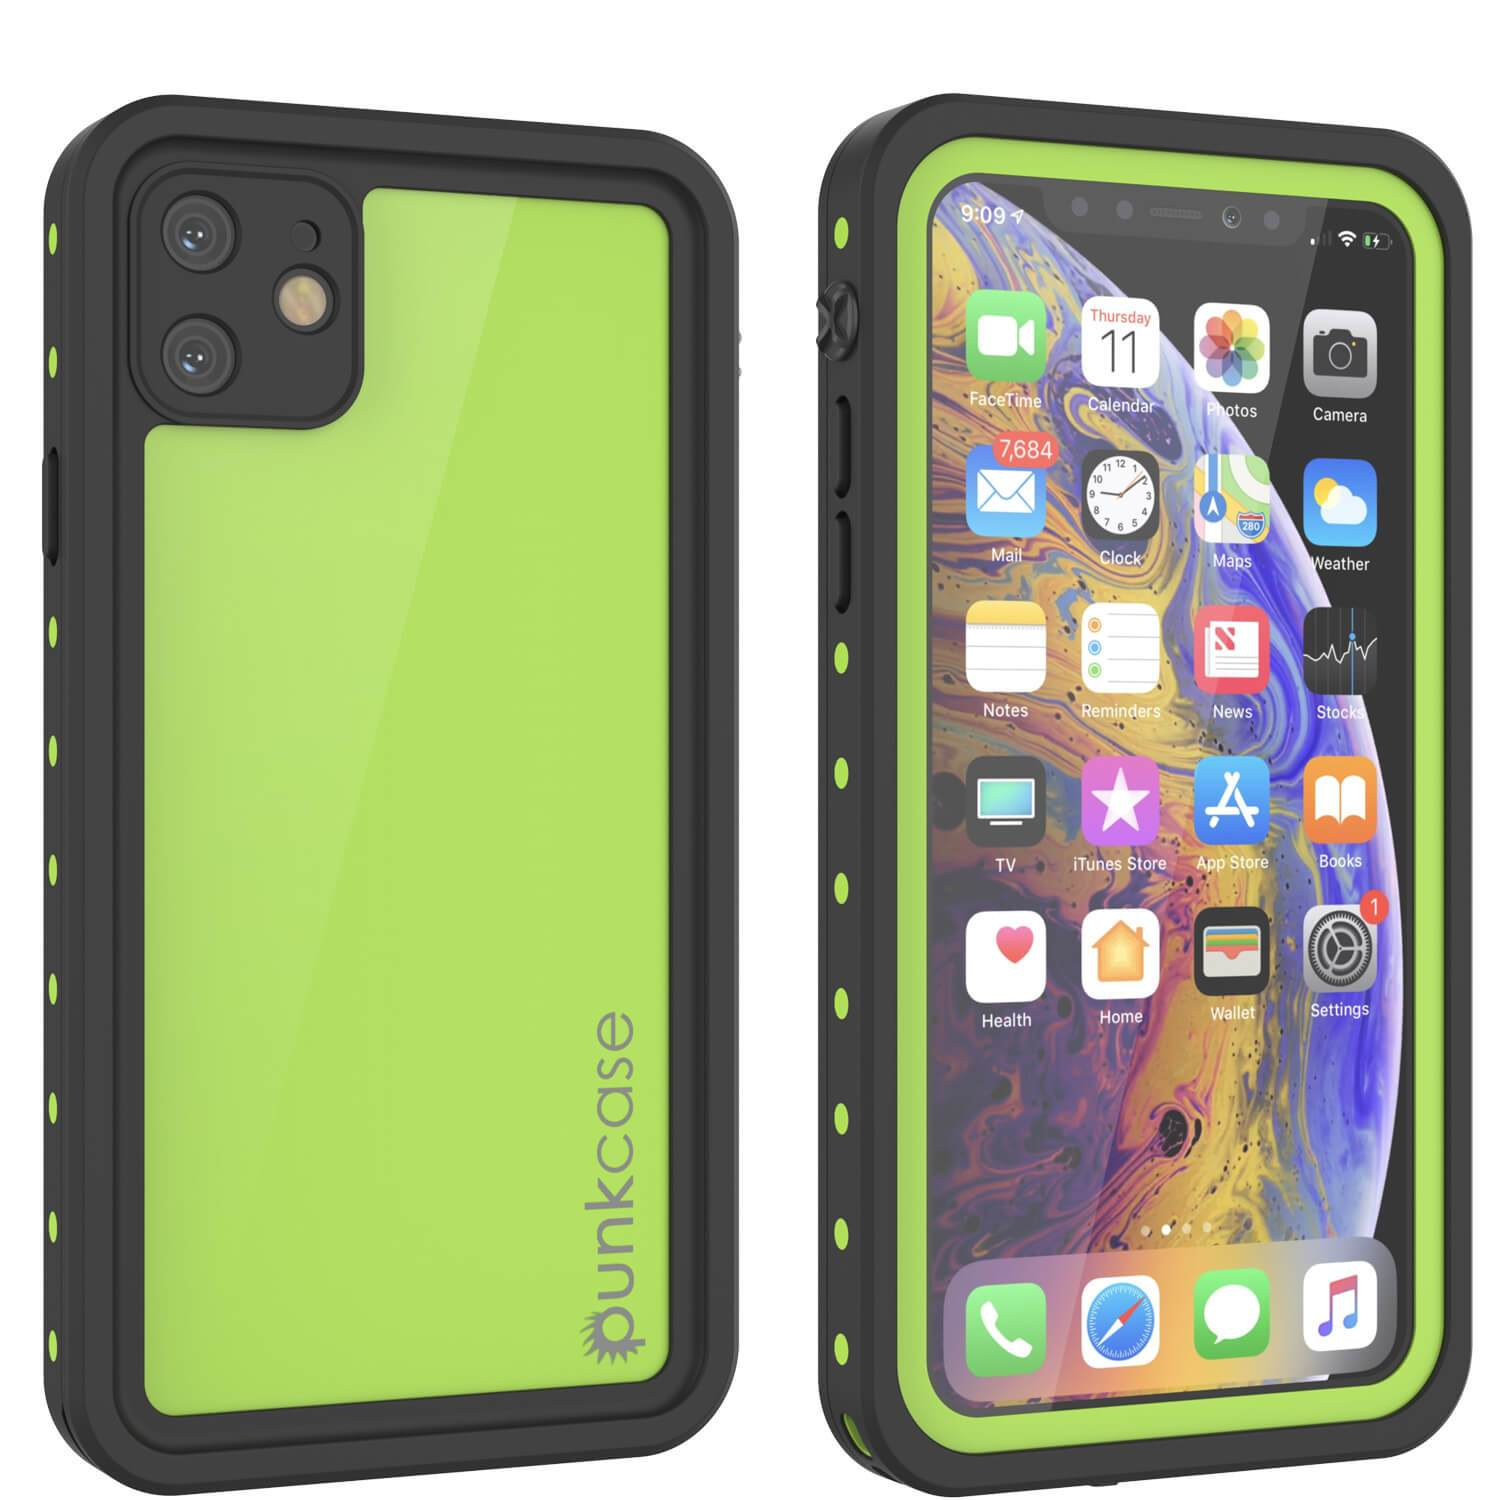 iPhone 11 Waterproof IP68 Case, Punkcase [Light green] [StudStar Series] [Slim Fit] [Dirtproof]